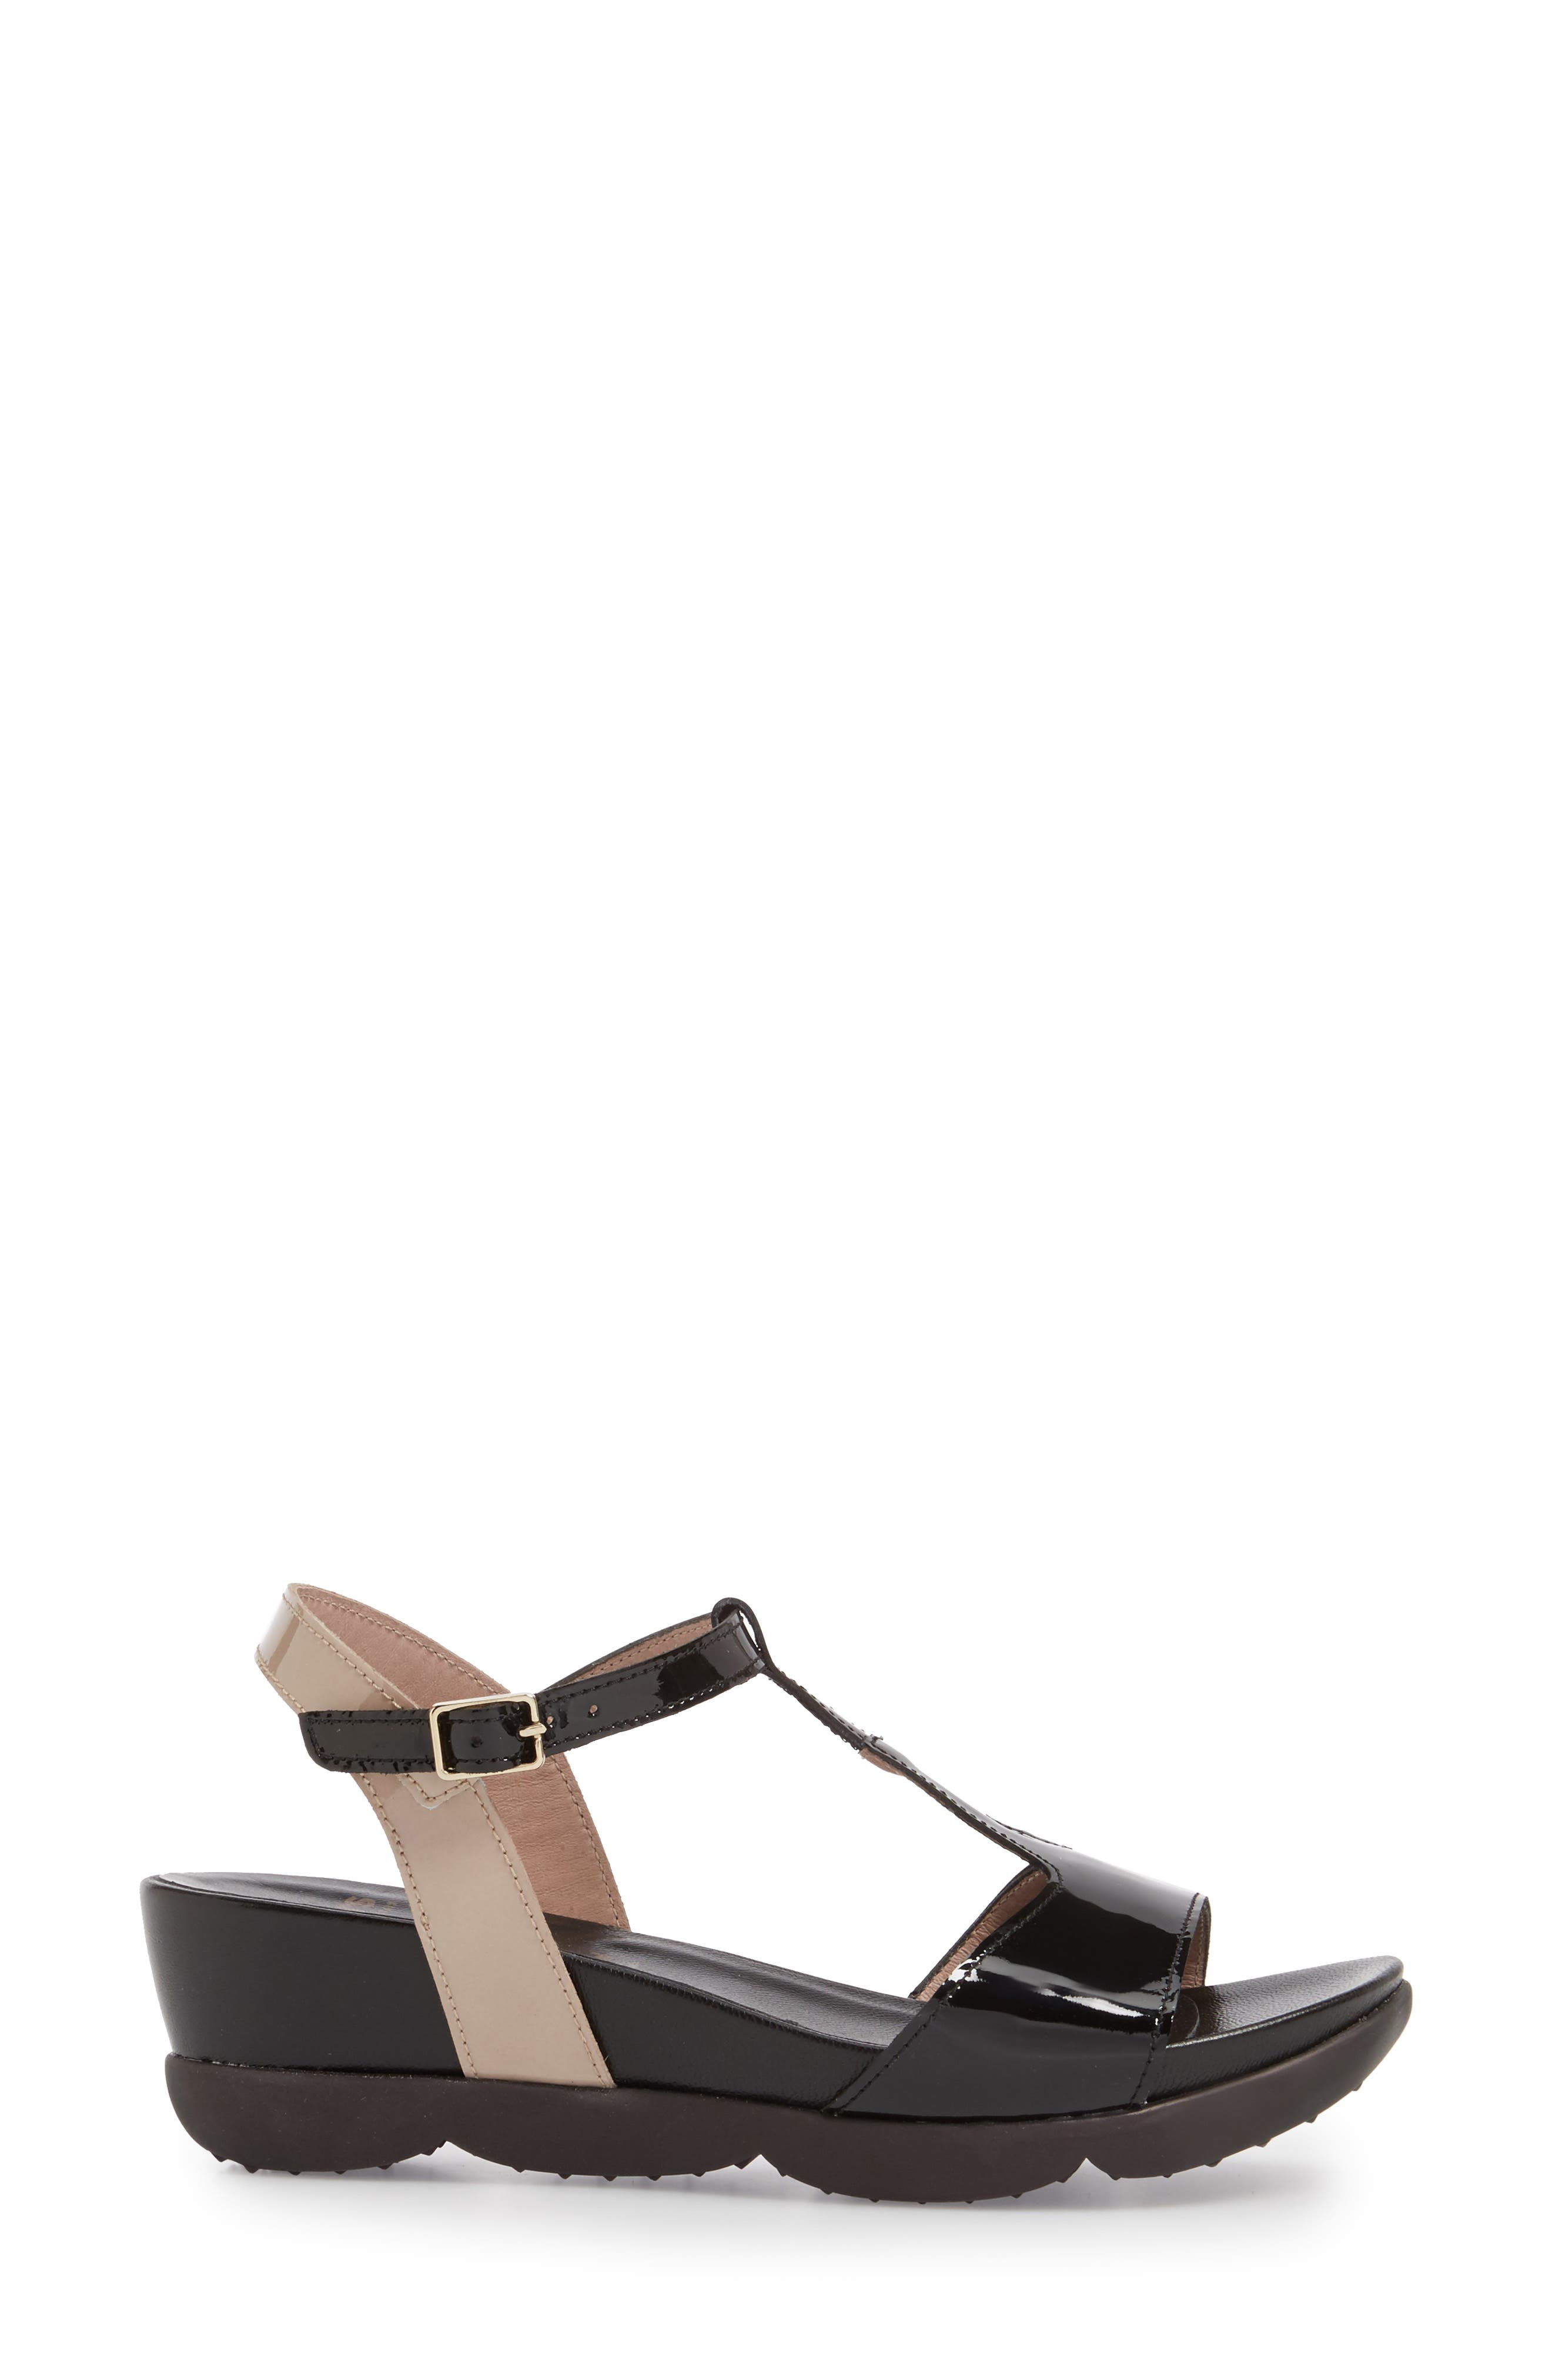 Wedge Sandal,                             Alternate thumbnail 3, color,                             BLACK/ TAUPE LEATHER